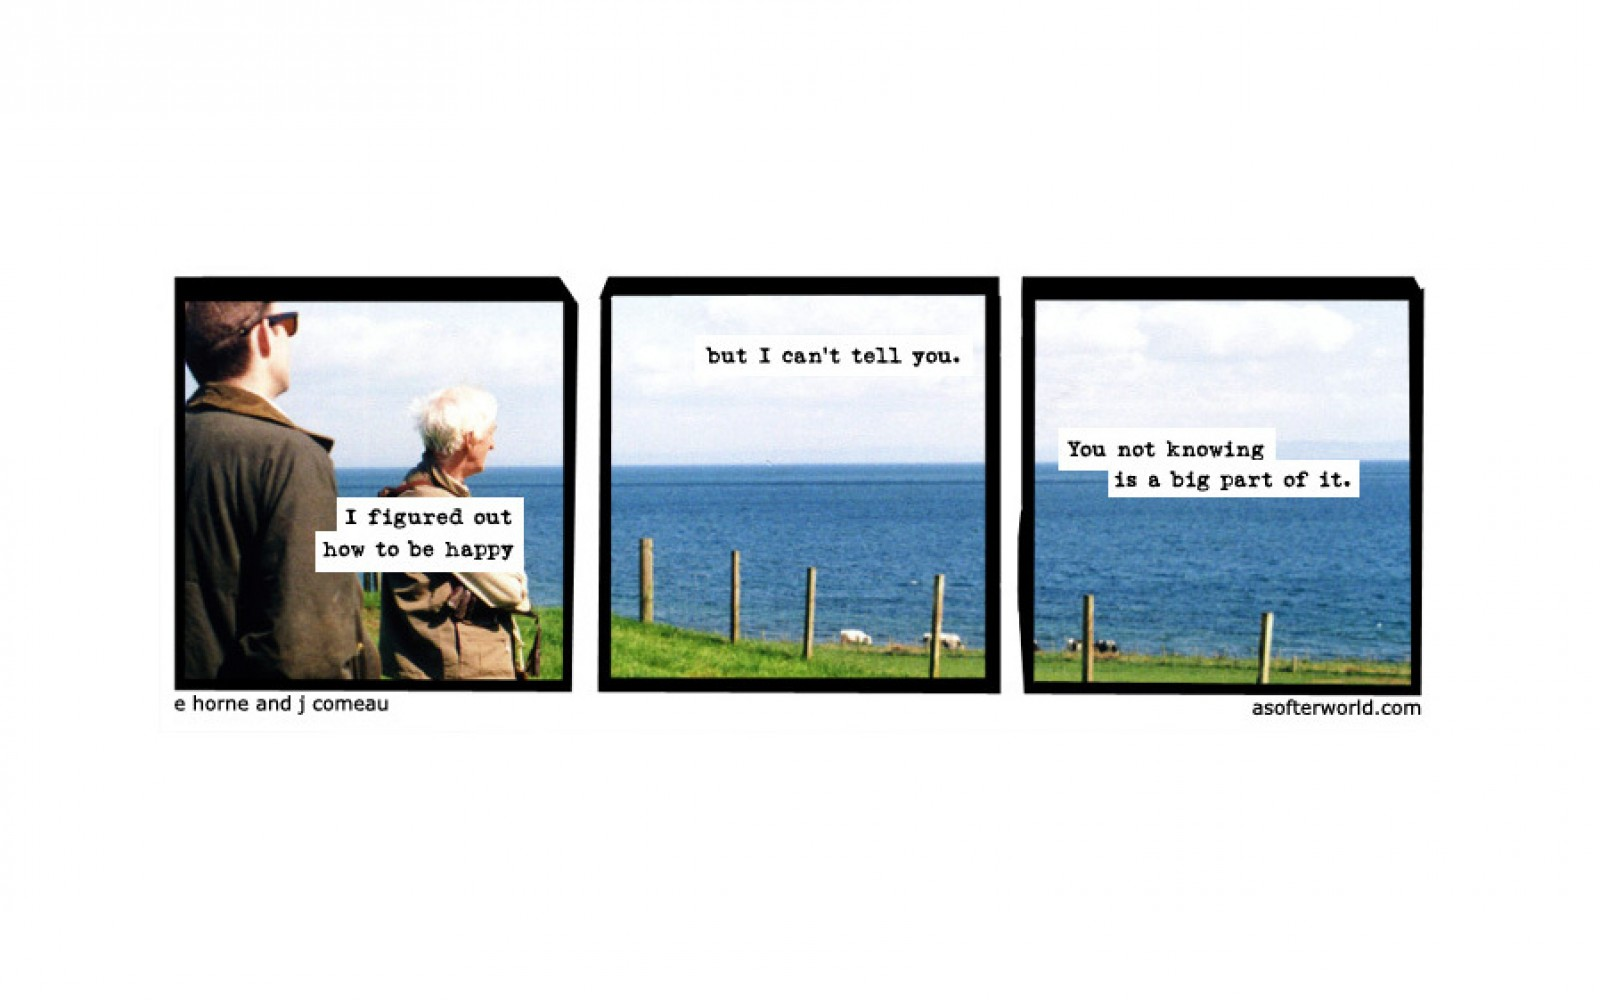 101 Bleak Posts From 'A Softer World' That Are Way Too Real